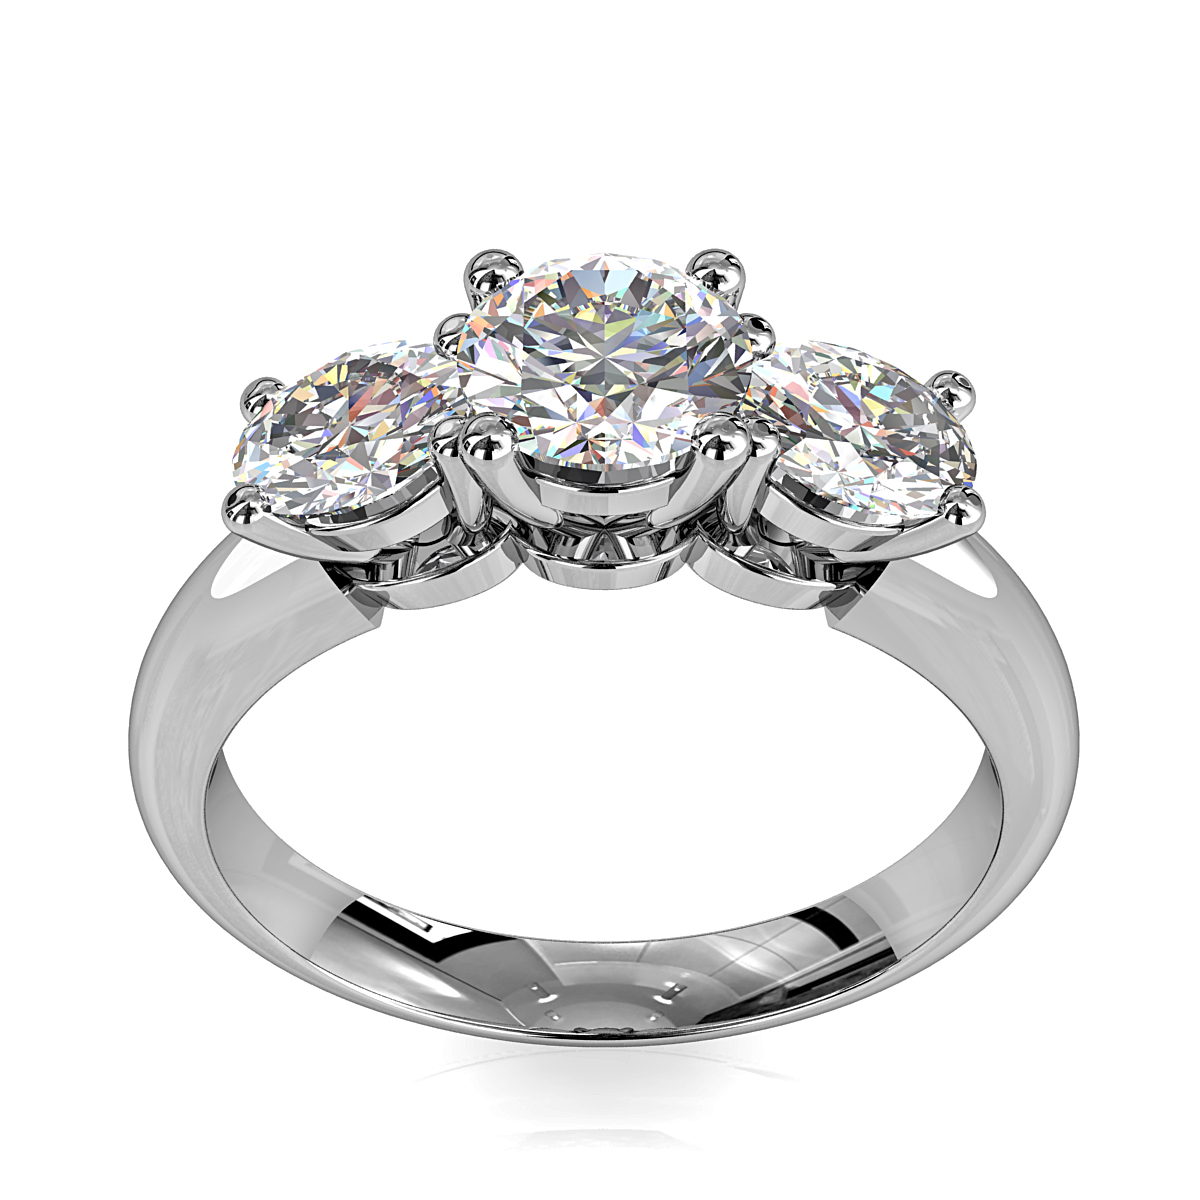 Round Brilliant Cut Diamond Trilogy Engagement Ring, Stones 4 Claw Set on a Rounded Band with Classic Crown Undersetting.